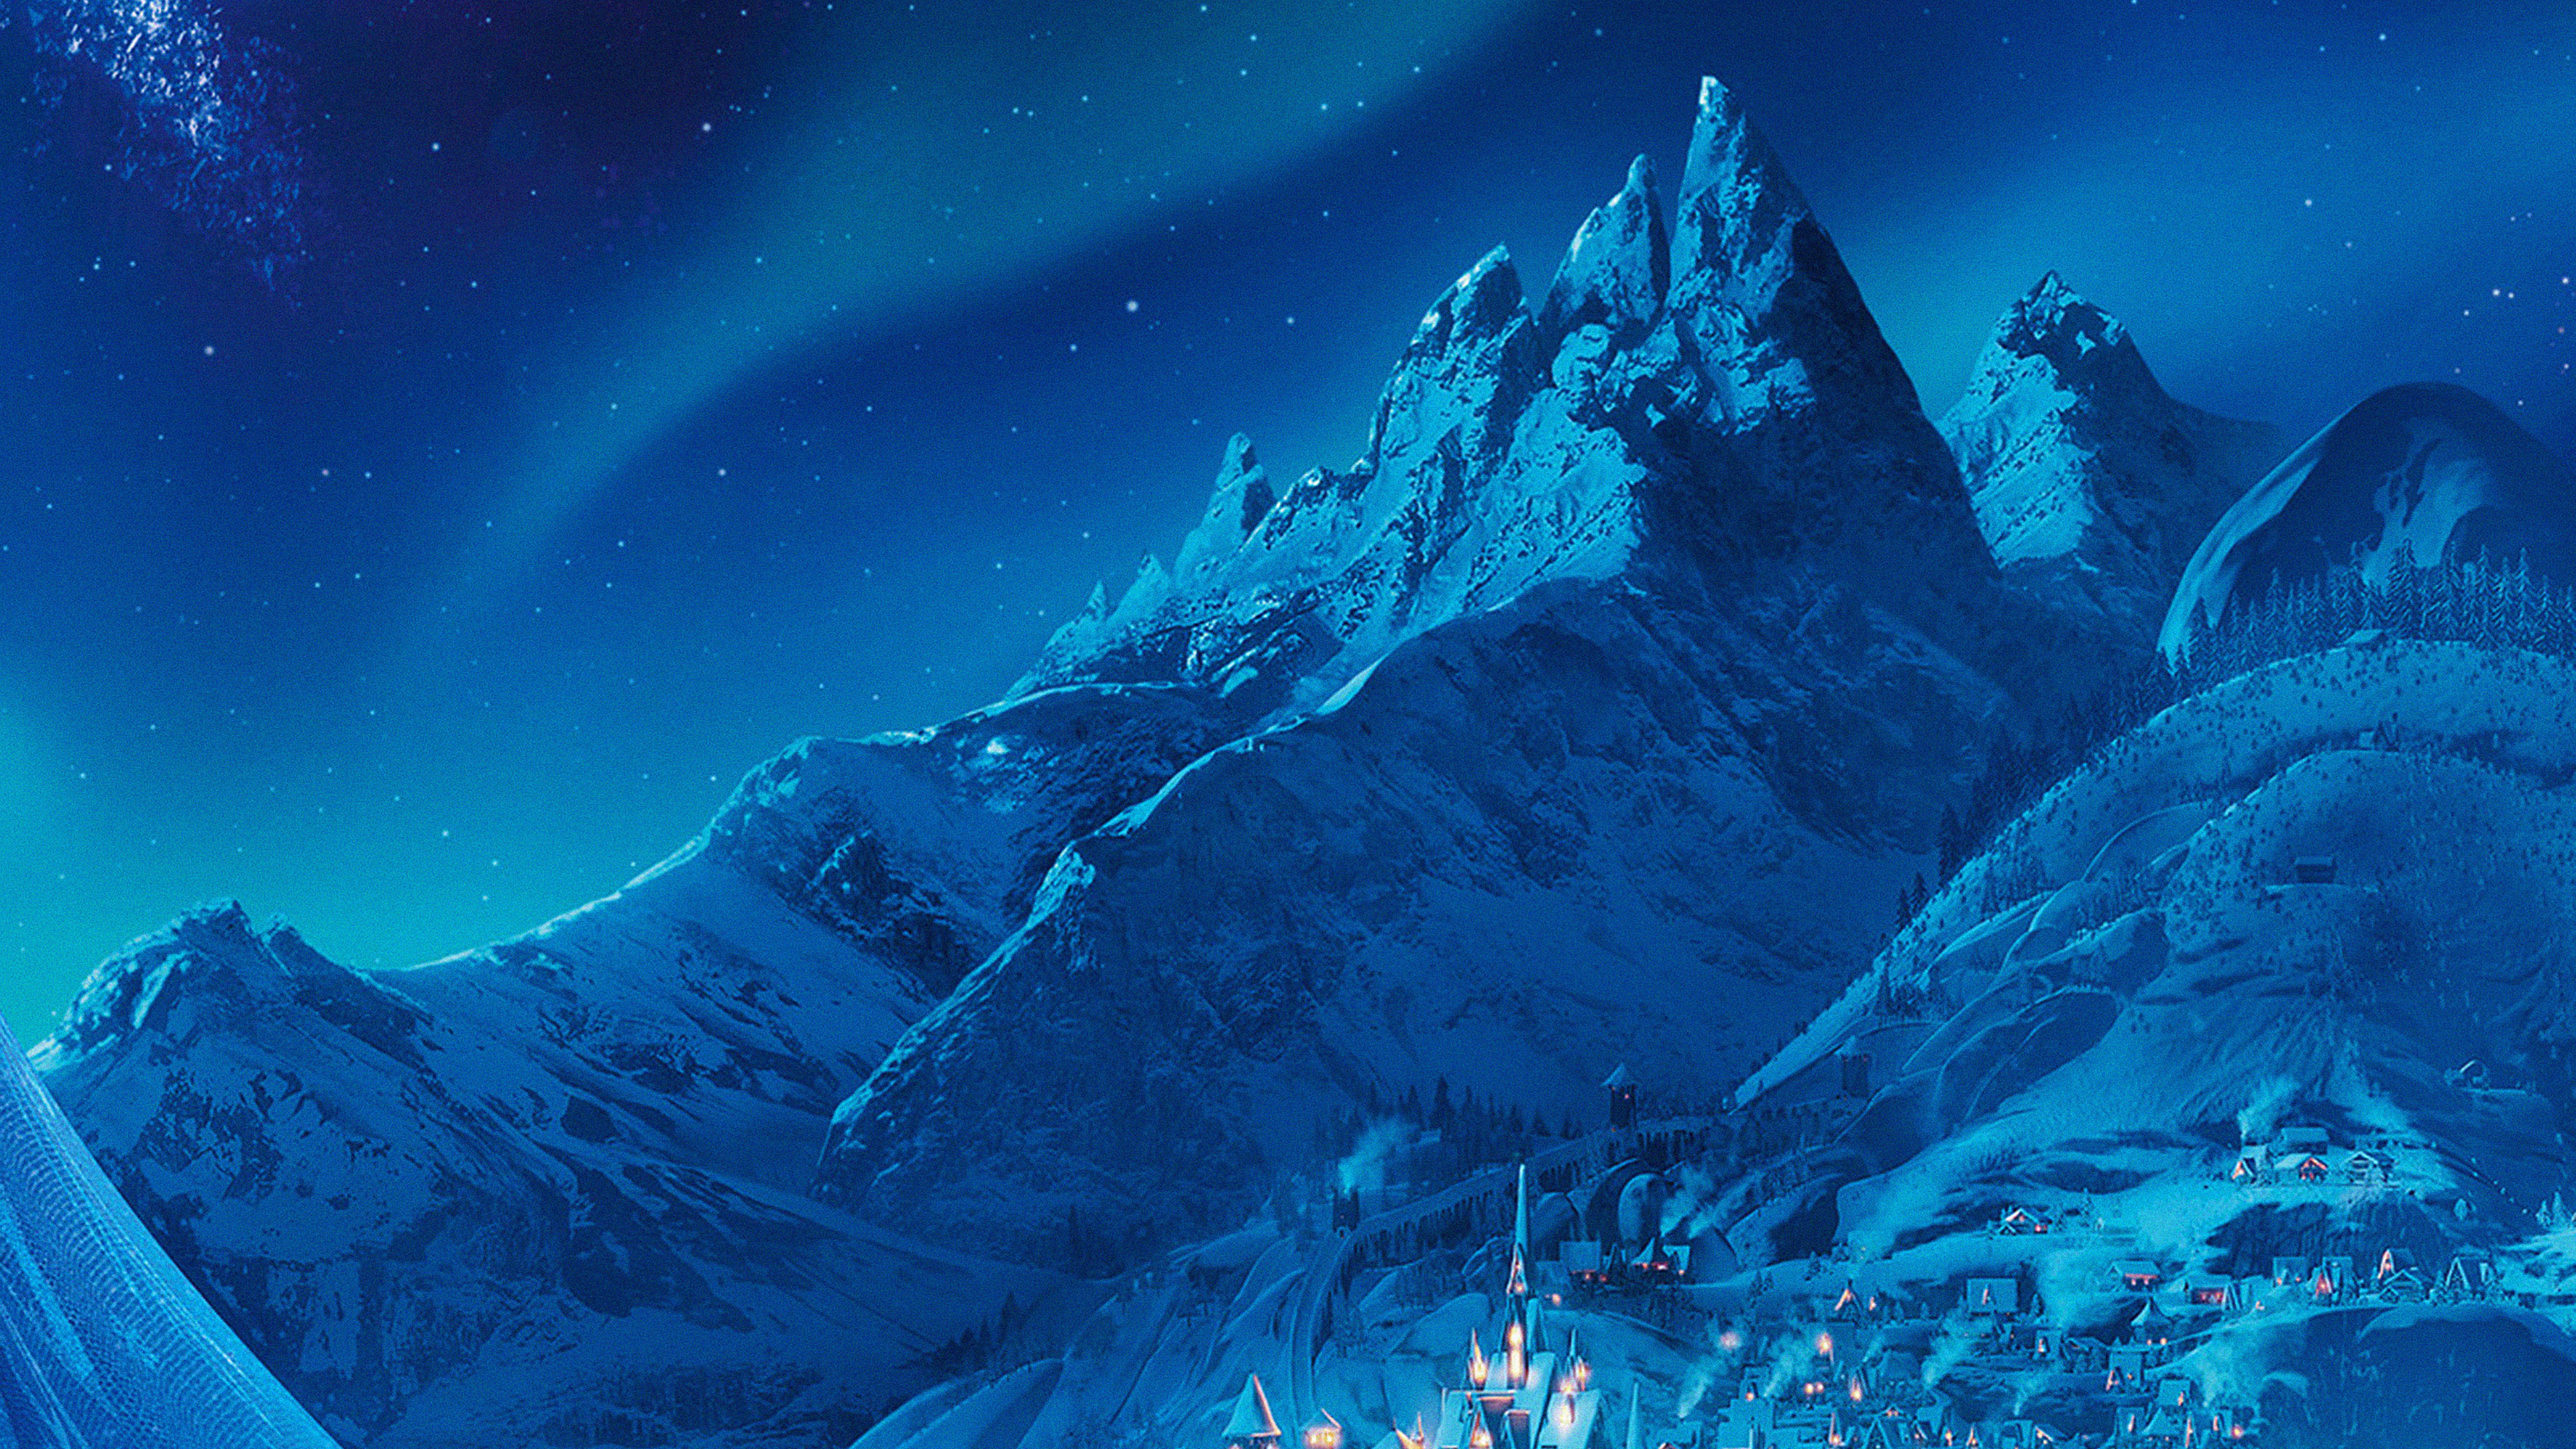 ac70-wallpaper-elsa-frozen-castle-queen-disney-illust-snow ...